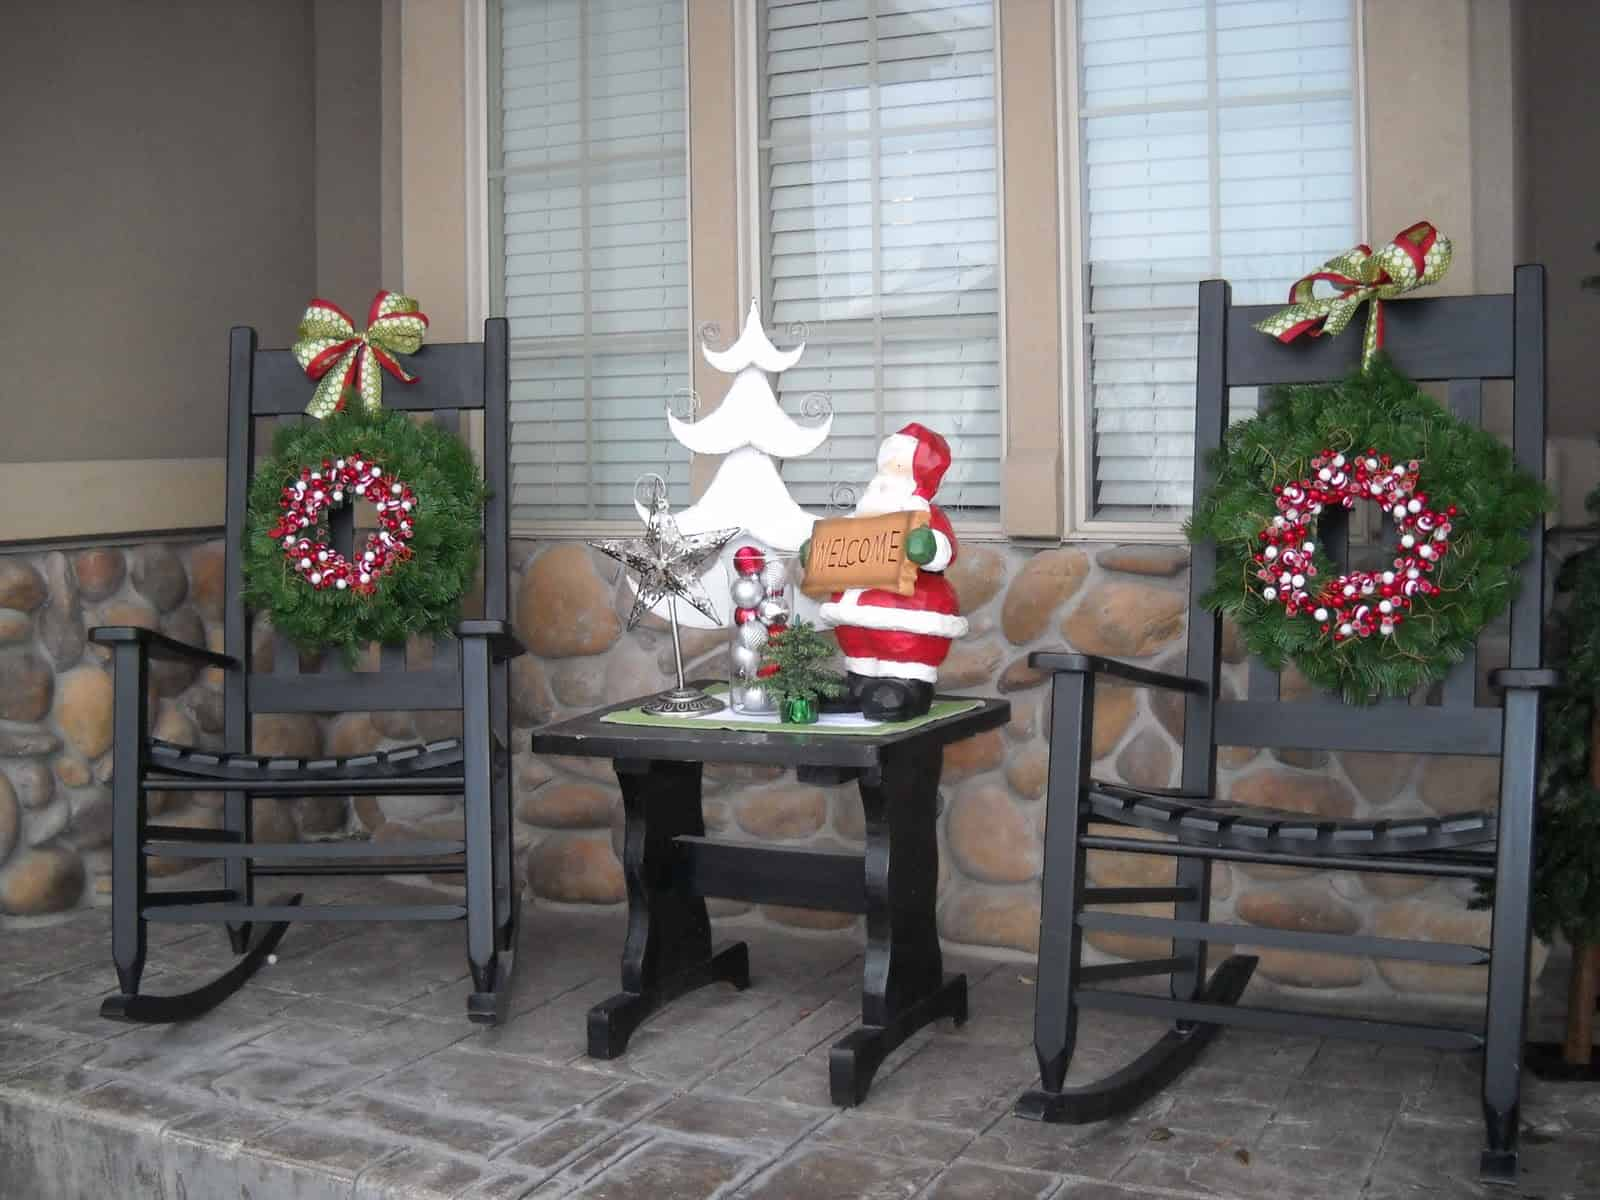 country ideas for outdoor christmas dcor - Decorating Porch For Christmas Country